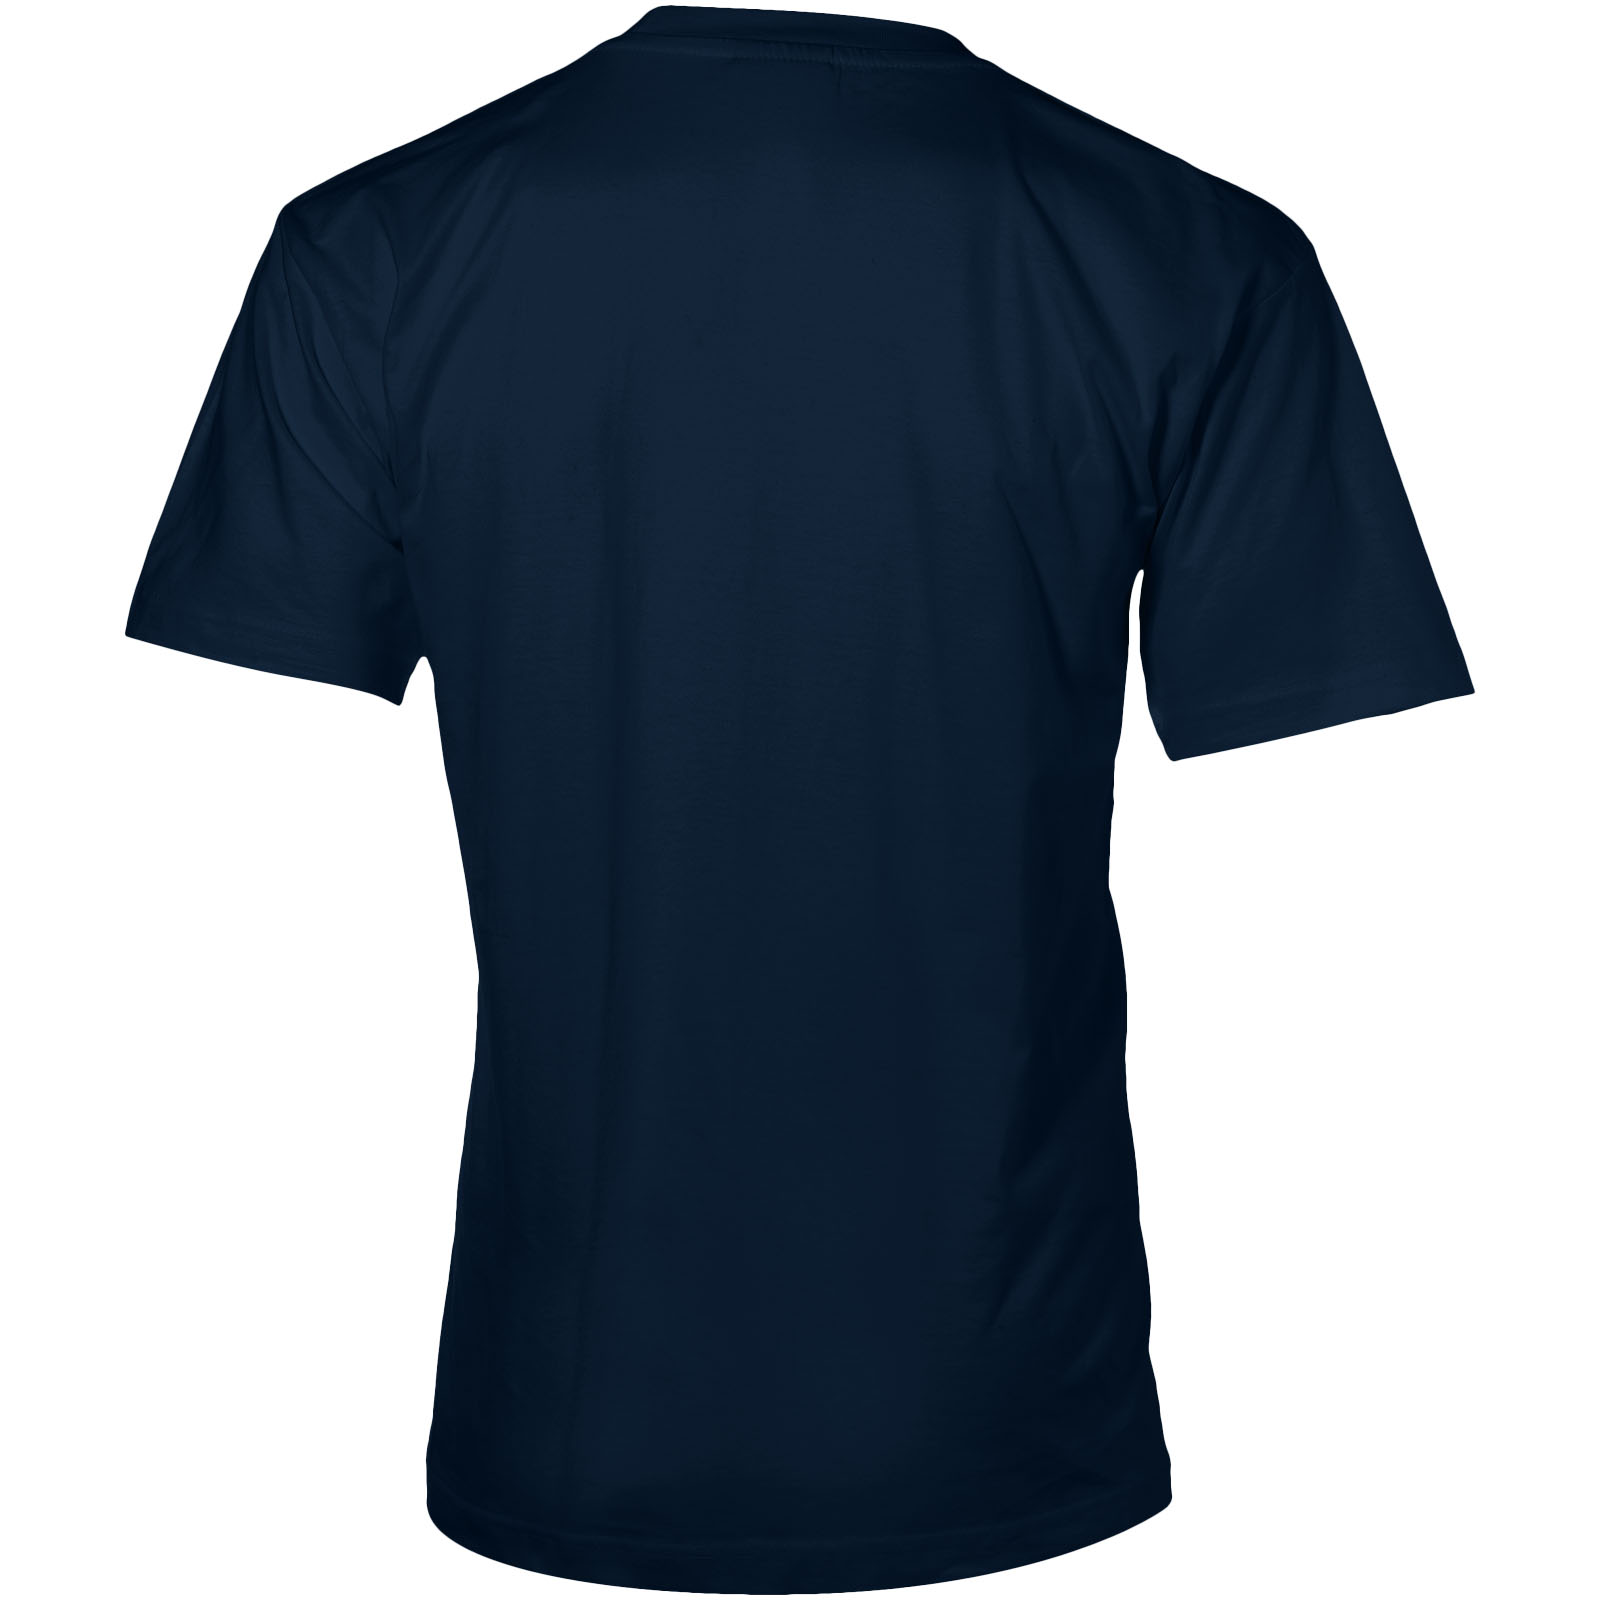 33S06 Return Ace kortærmet unisex t-shirt i Marineblå